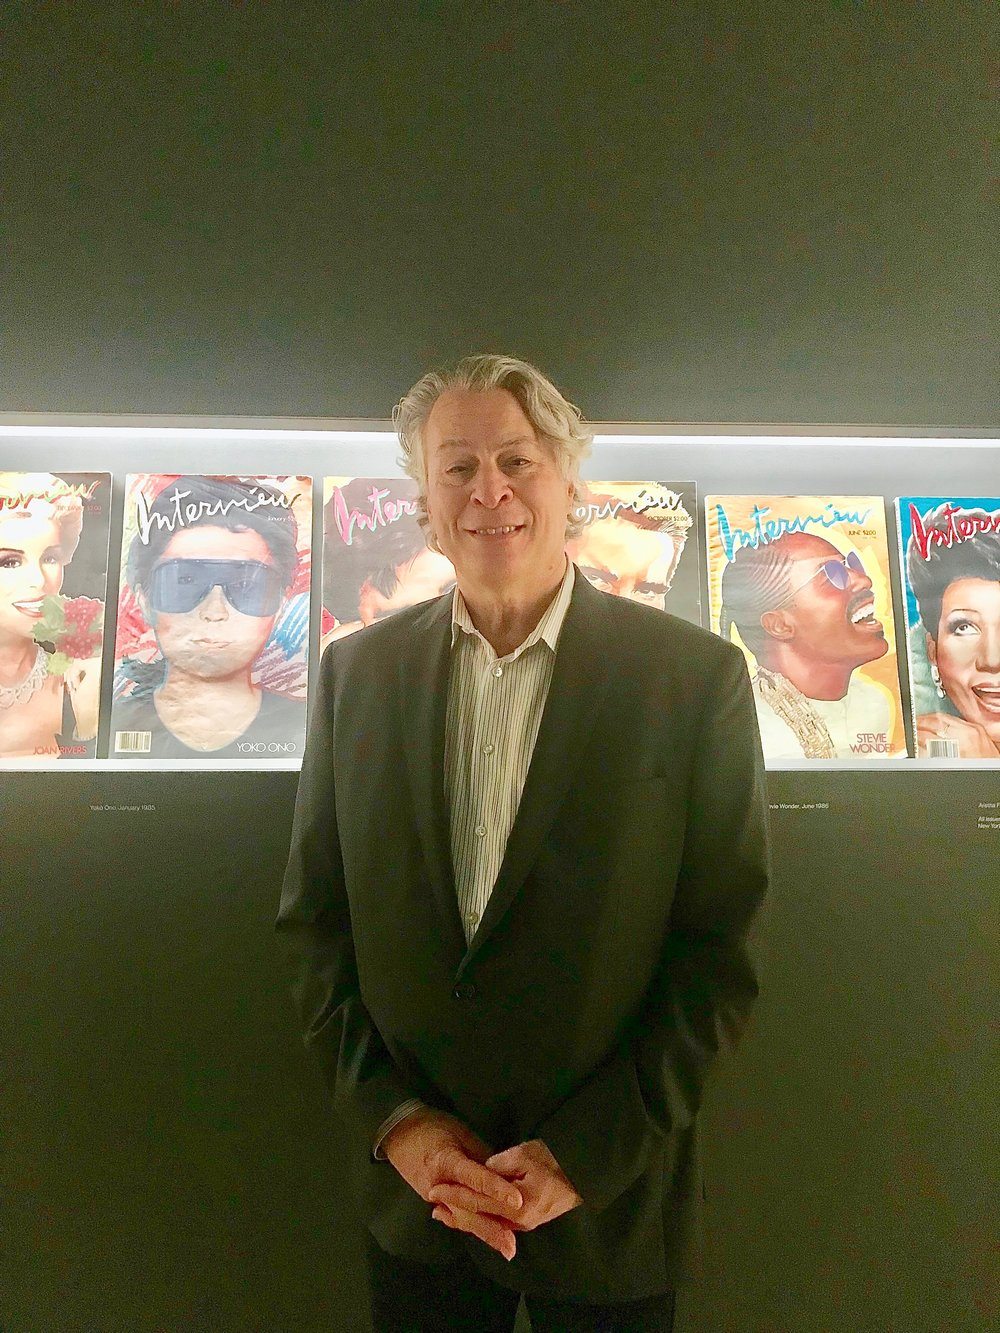 Interview Magazine installation at opening of Warhol exhibit at Whitney, November of 2018, with two of his covers (Yoko Ono, Stevie Wonder).